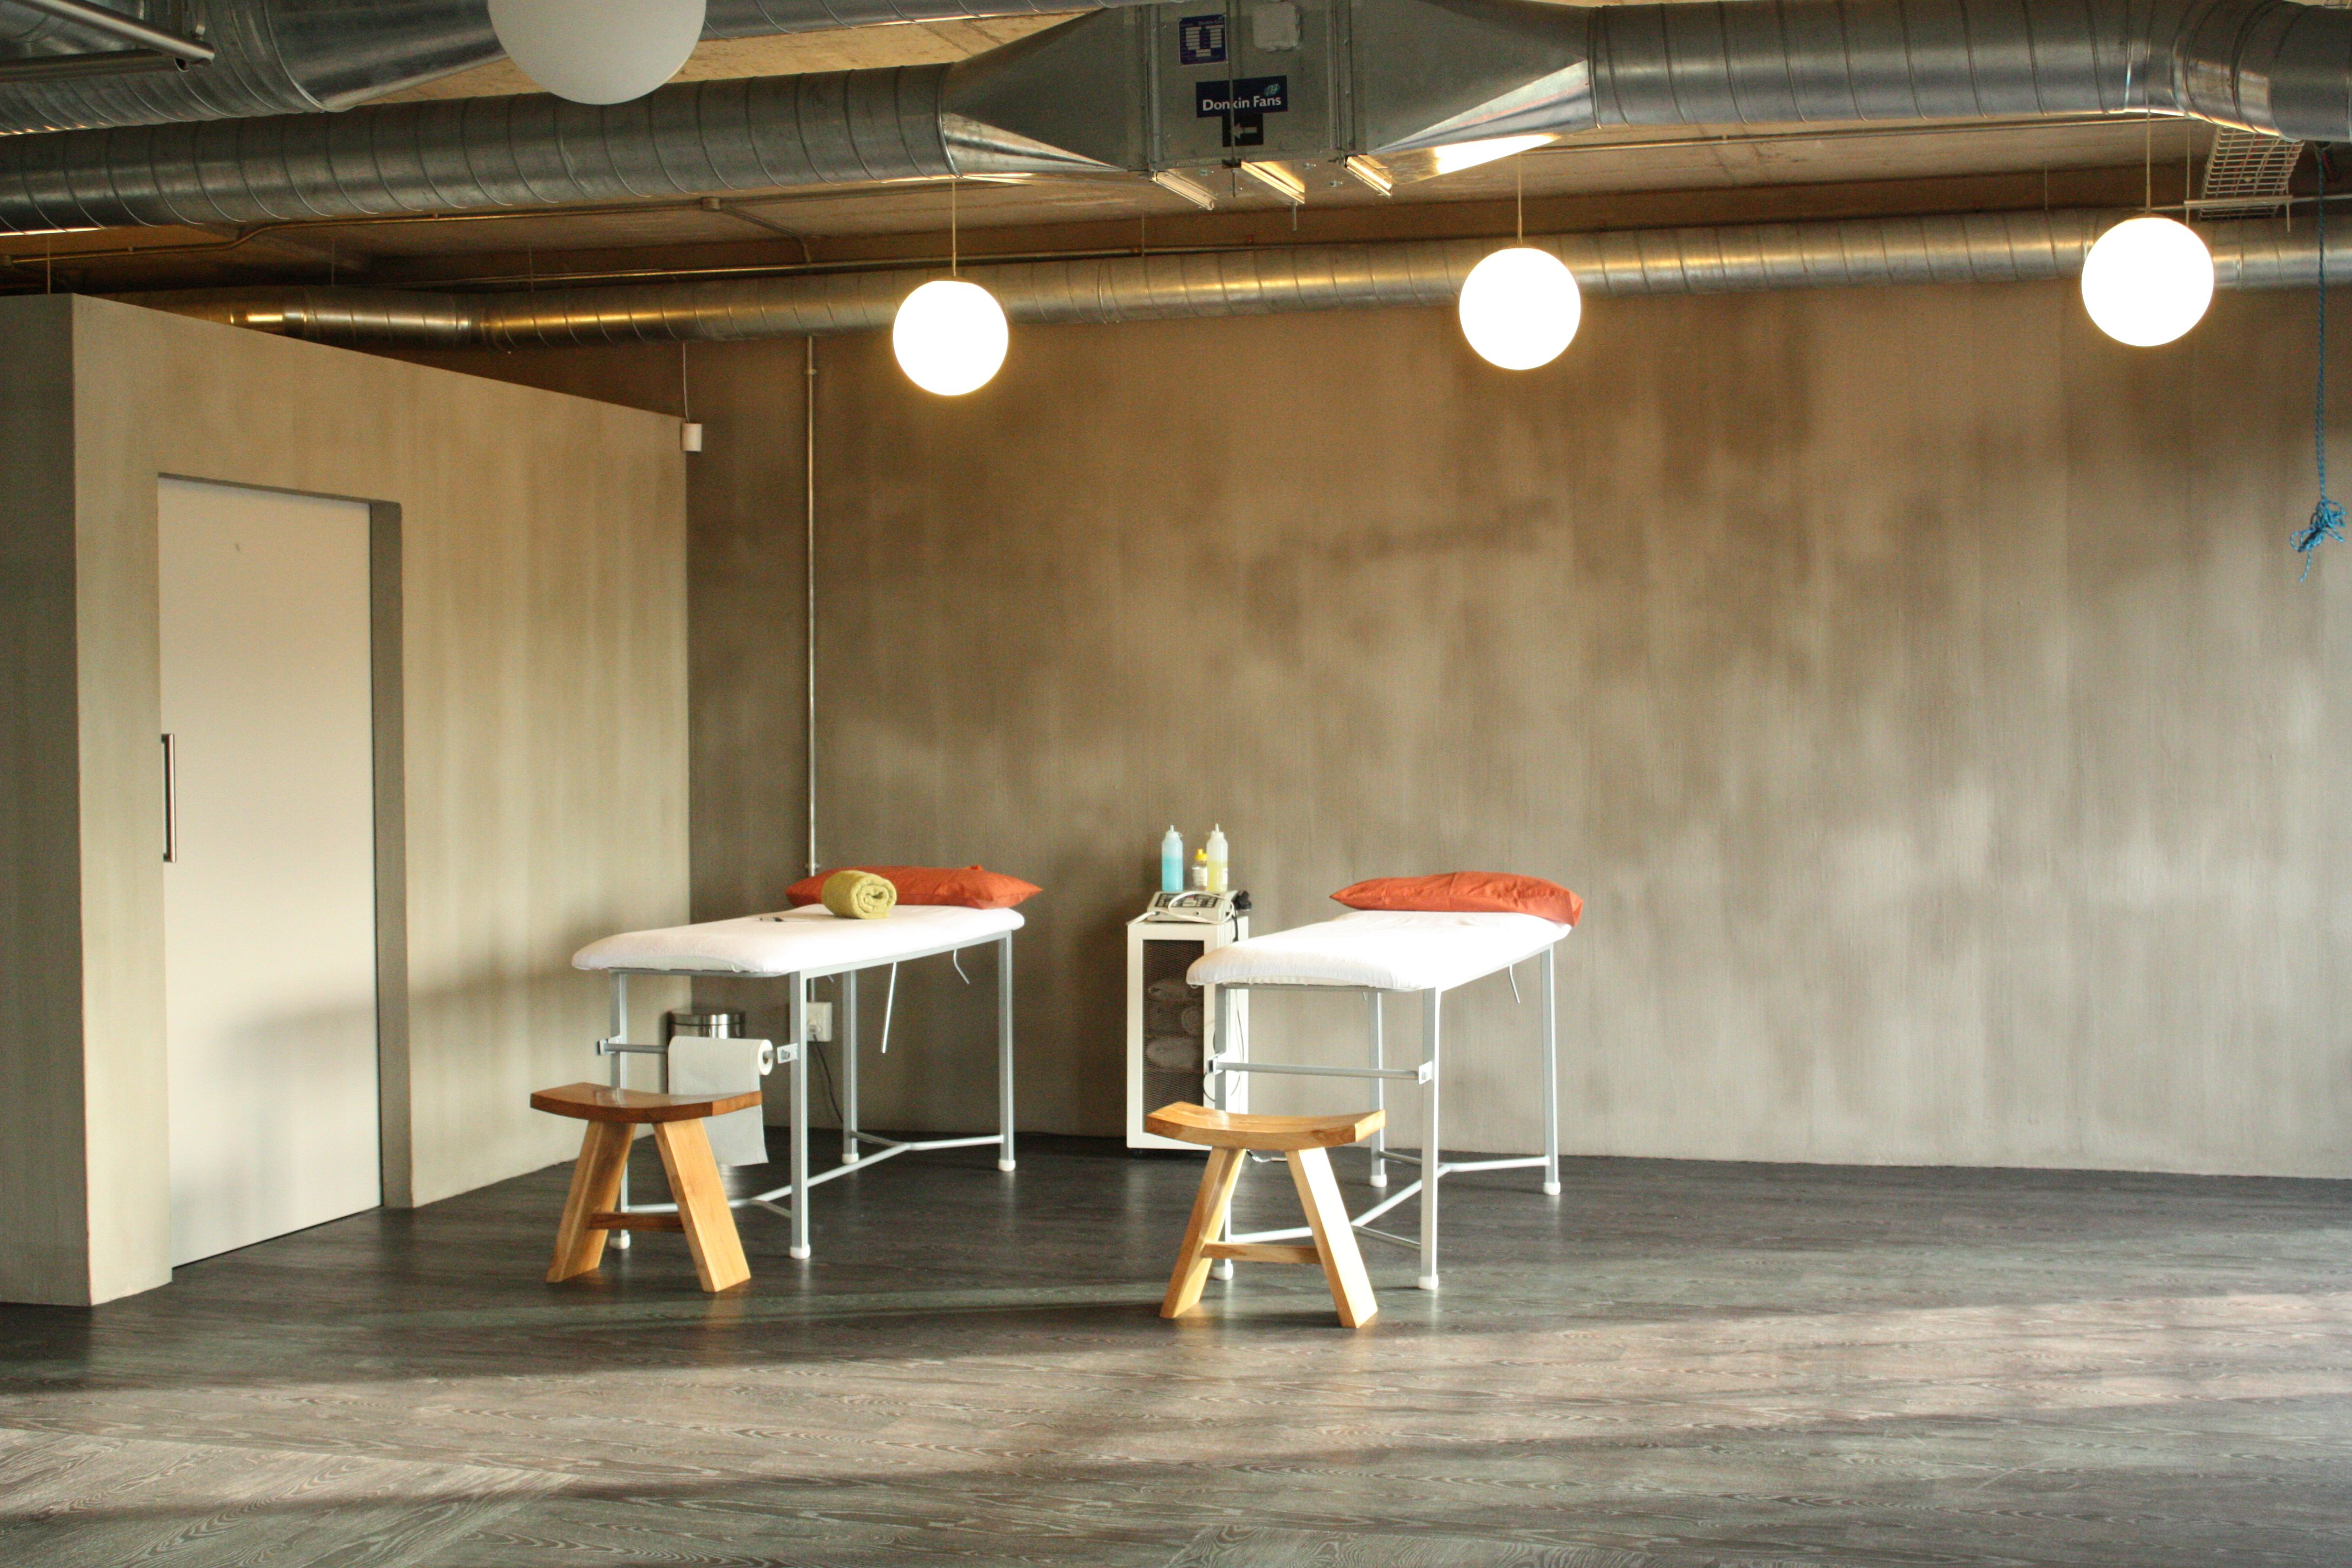 Spark Physiotherapy Studio, De Waterkant, Cape Town, South